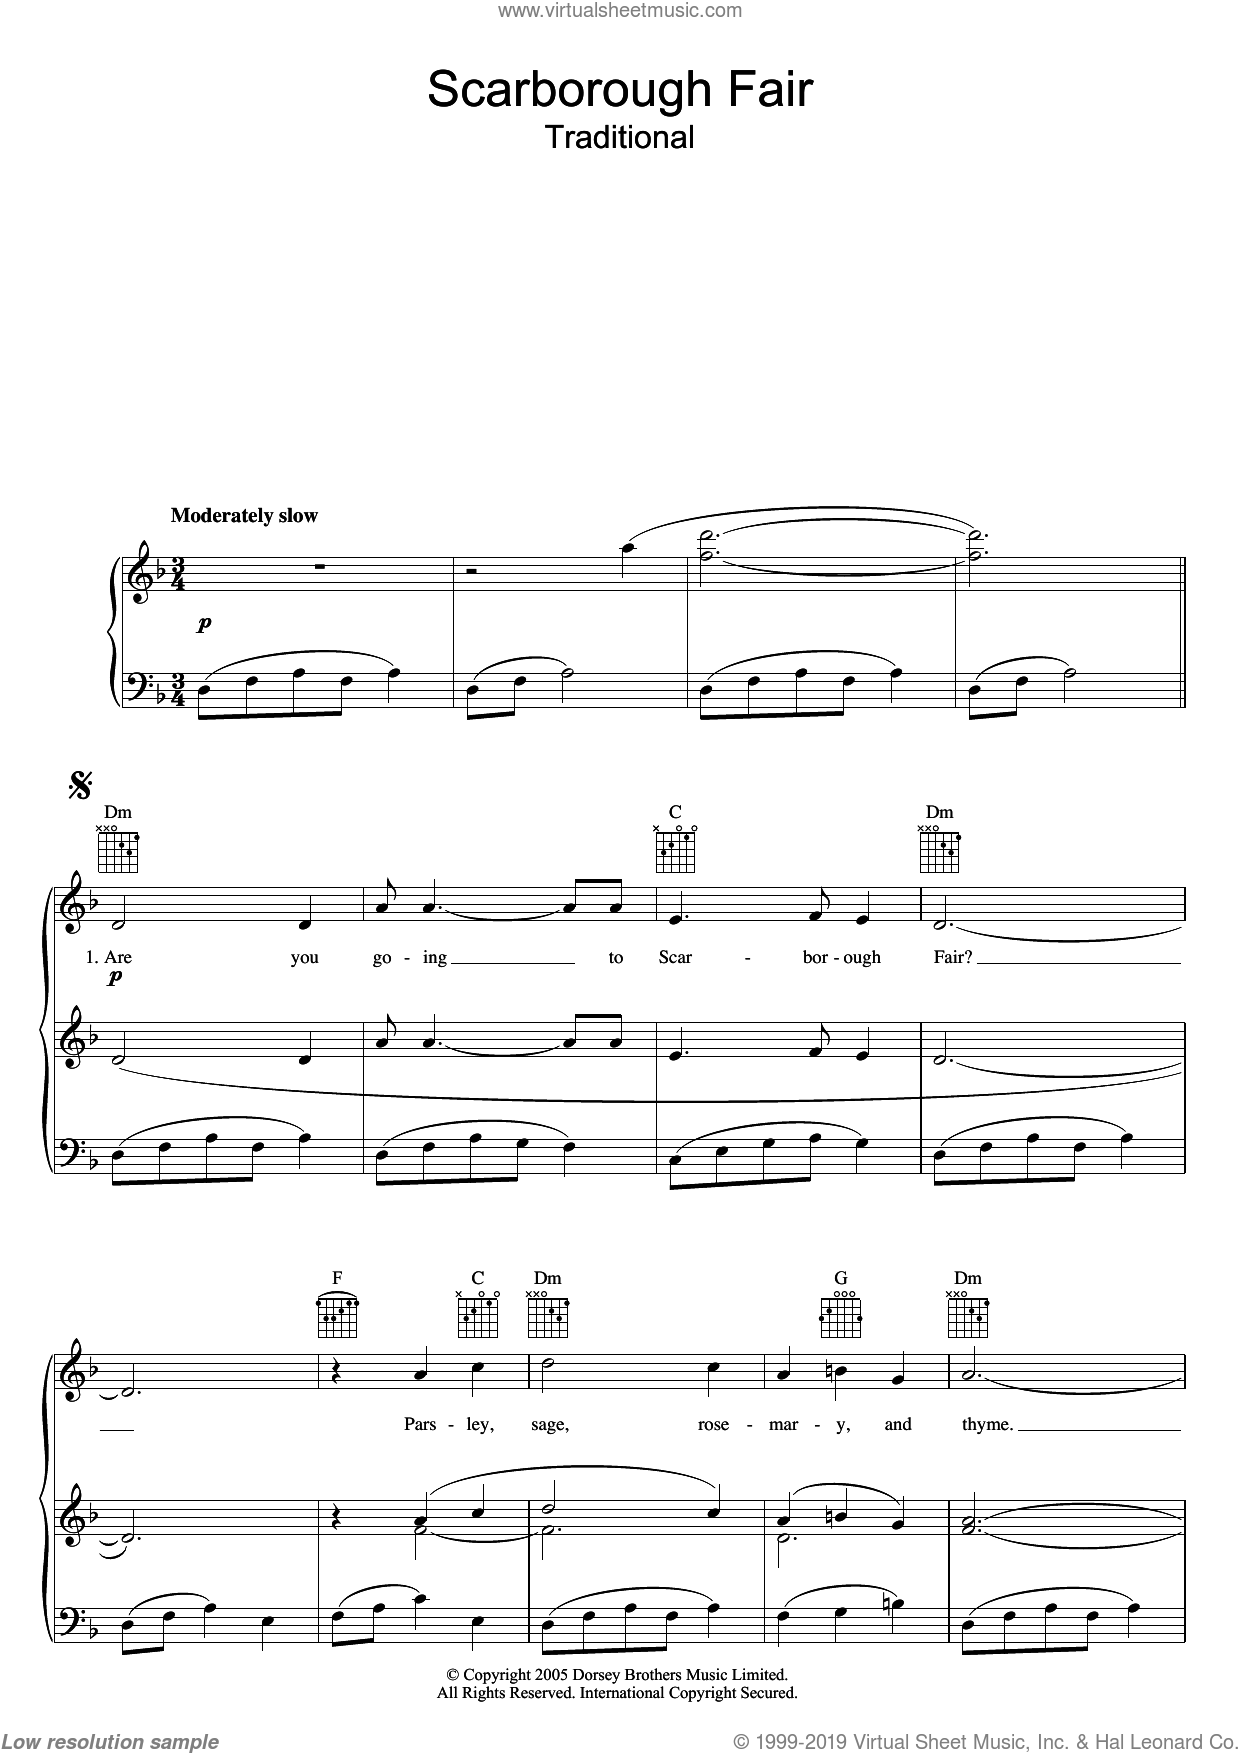 Scarborough Fair sheet music for voice, piano or guitar. Score Image Preview.